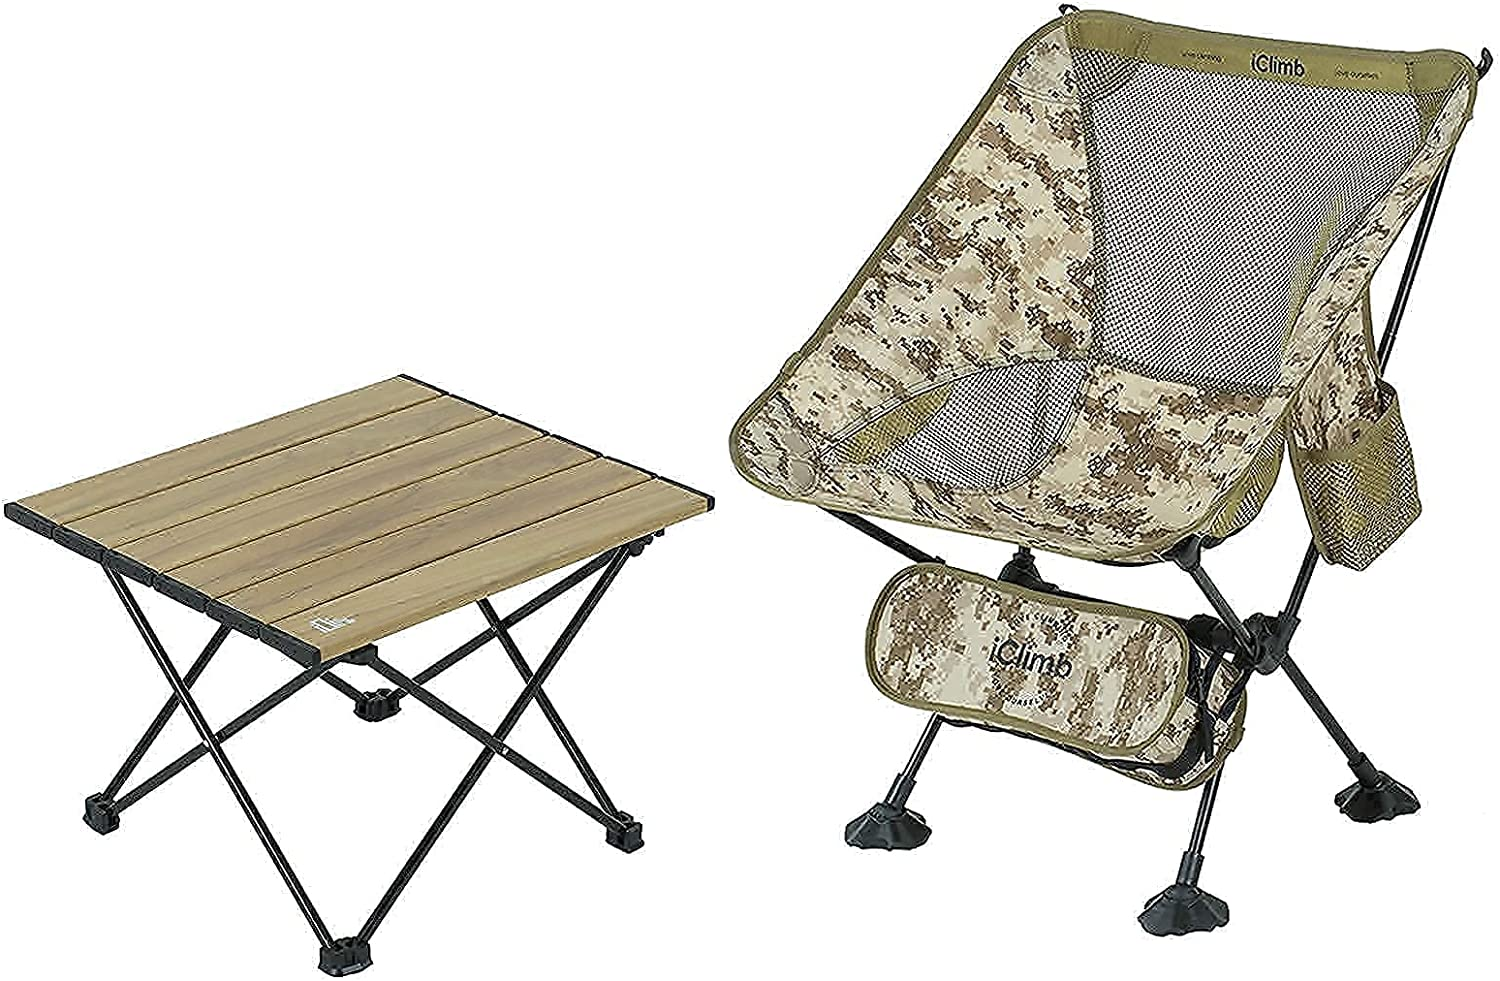 Popular overseas iClimb 1 Desert Minneapolis Mall Camouflage Folding Chair Feet Large F and with